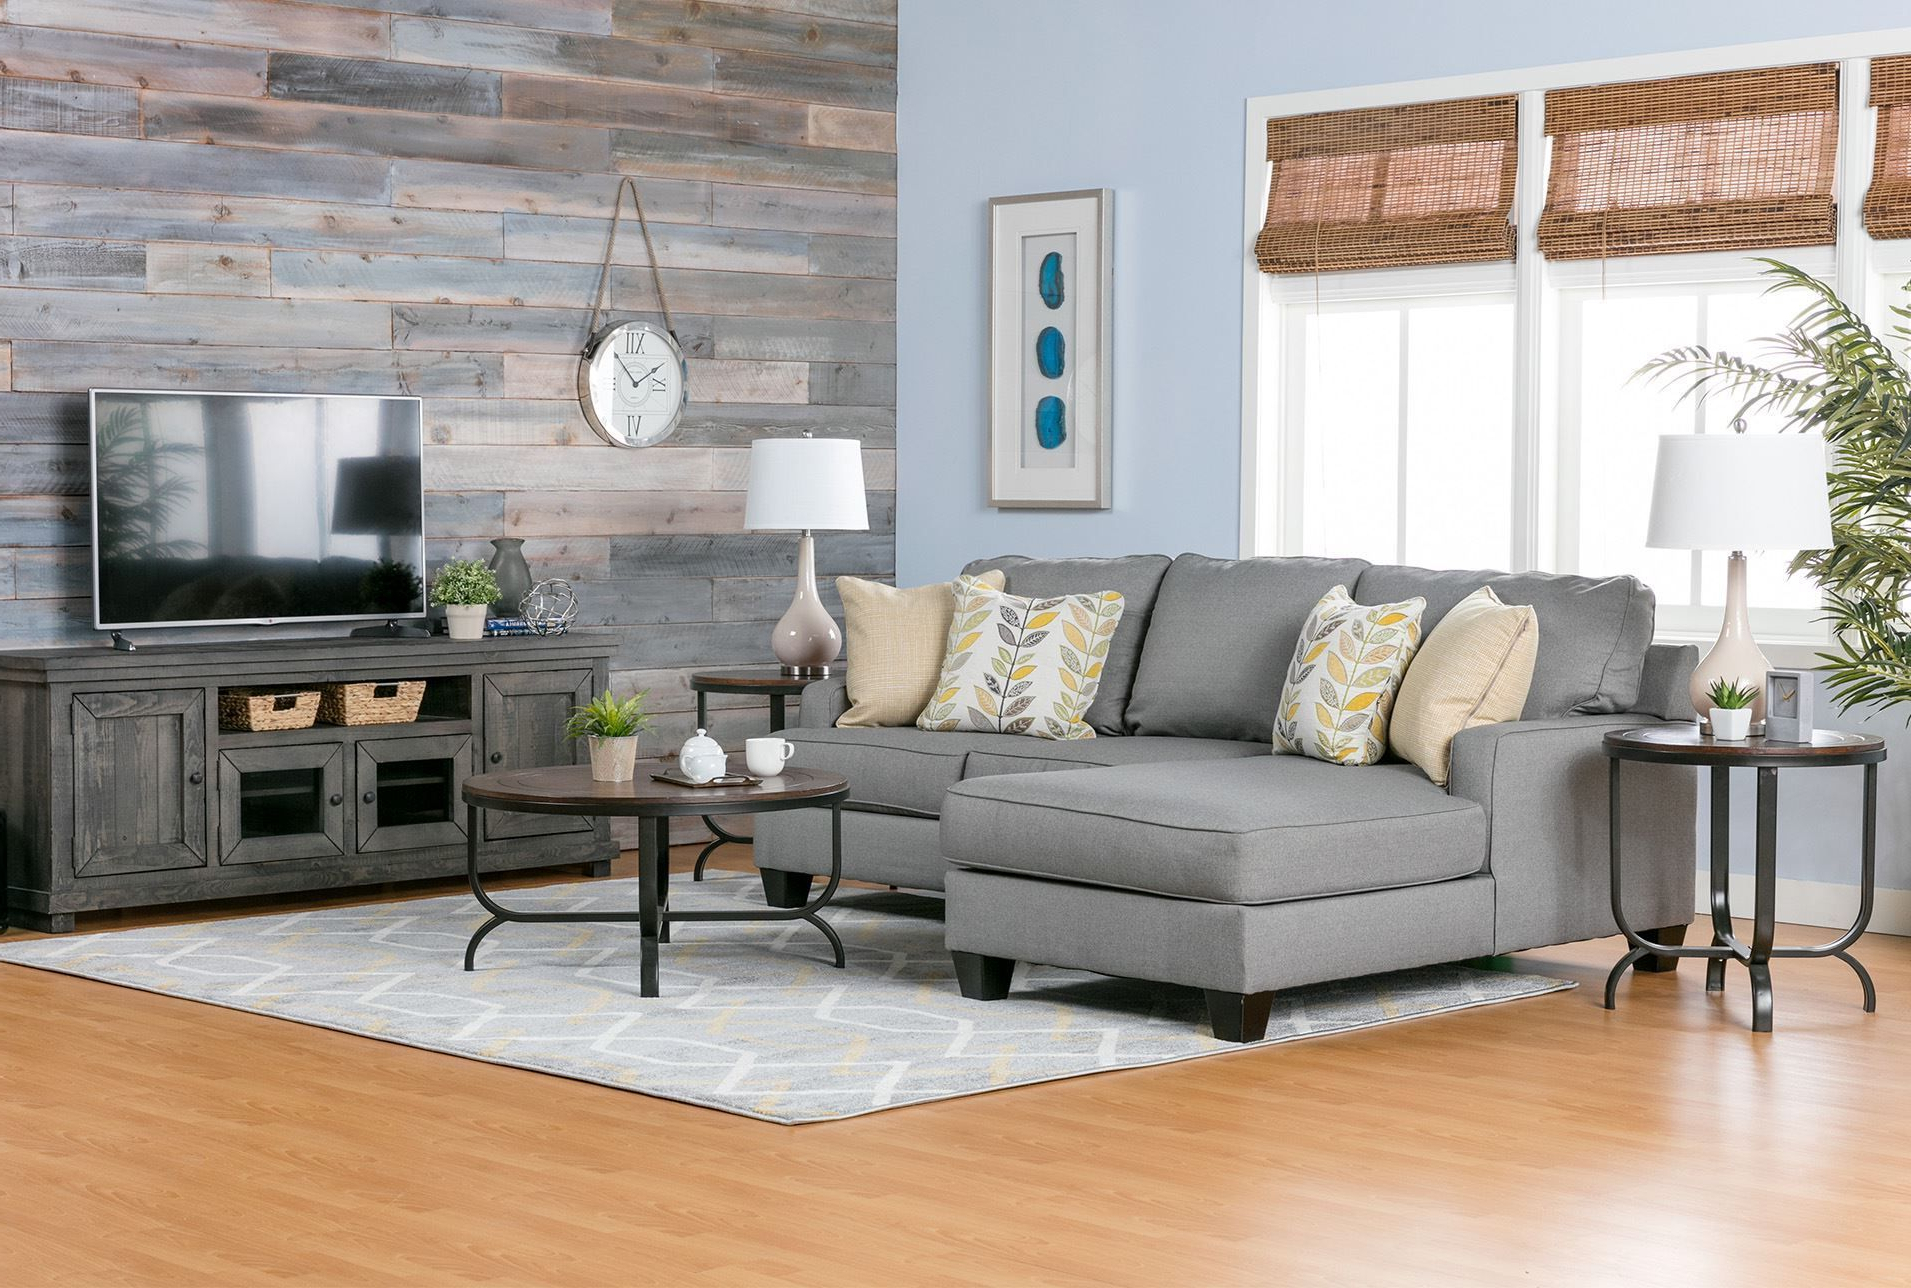 Sinclair Grey 74 Inch Tv Stand | Family Room | Pinterest | Living Inside Sinclair Grey 74 Inch Tv Stands (View 6 of 20)